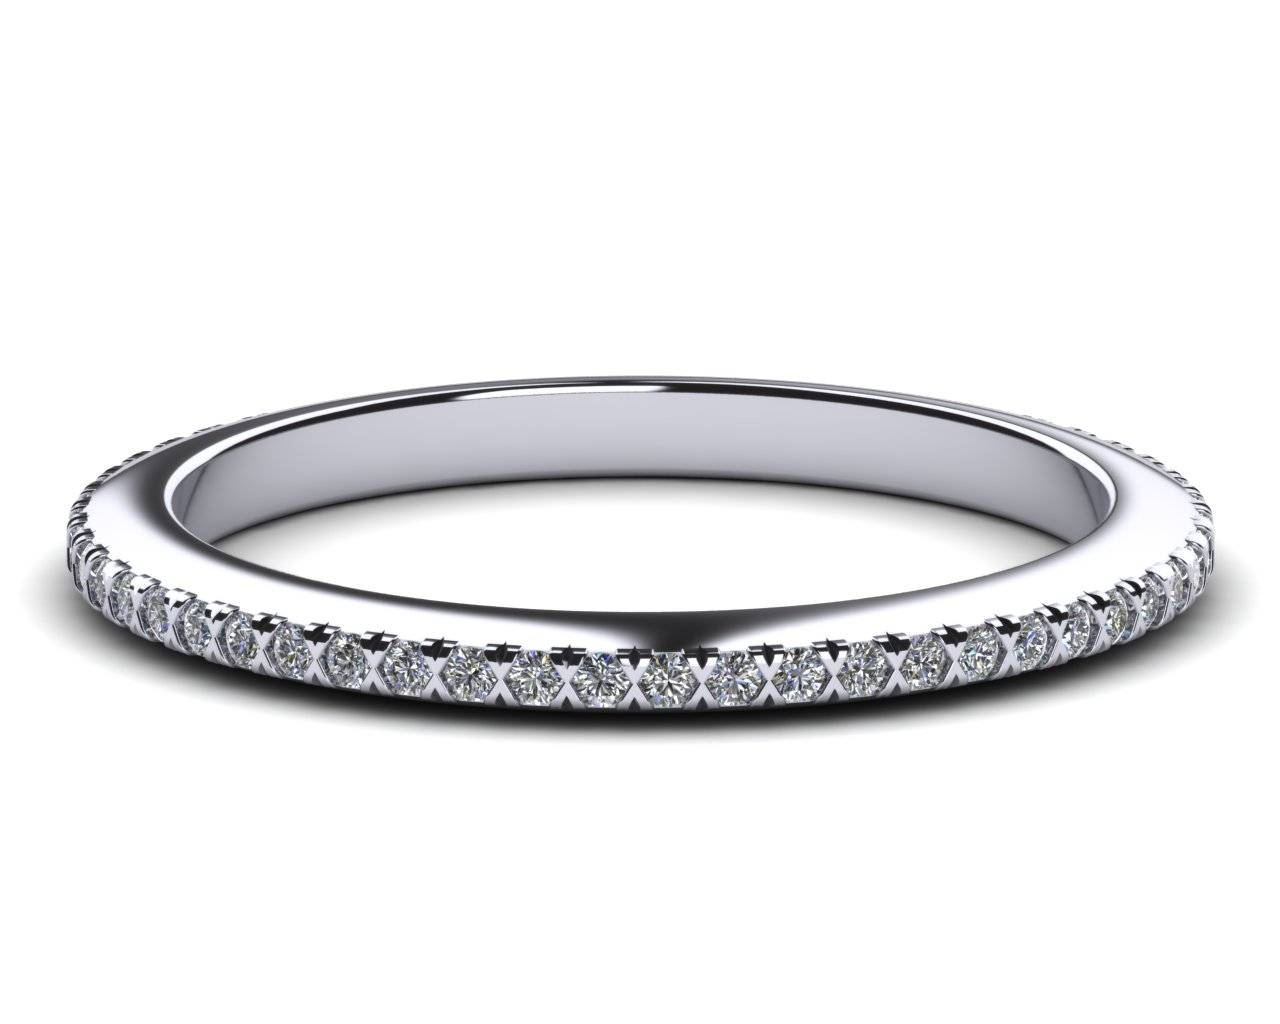 Platinum Diamond(G,si) Micro Pave Band Regarding Micro Pave Wedding Bands (Gallery 7 of 15)